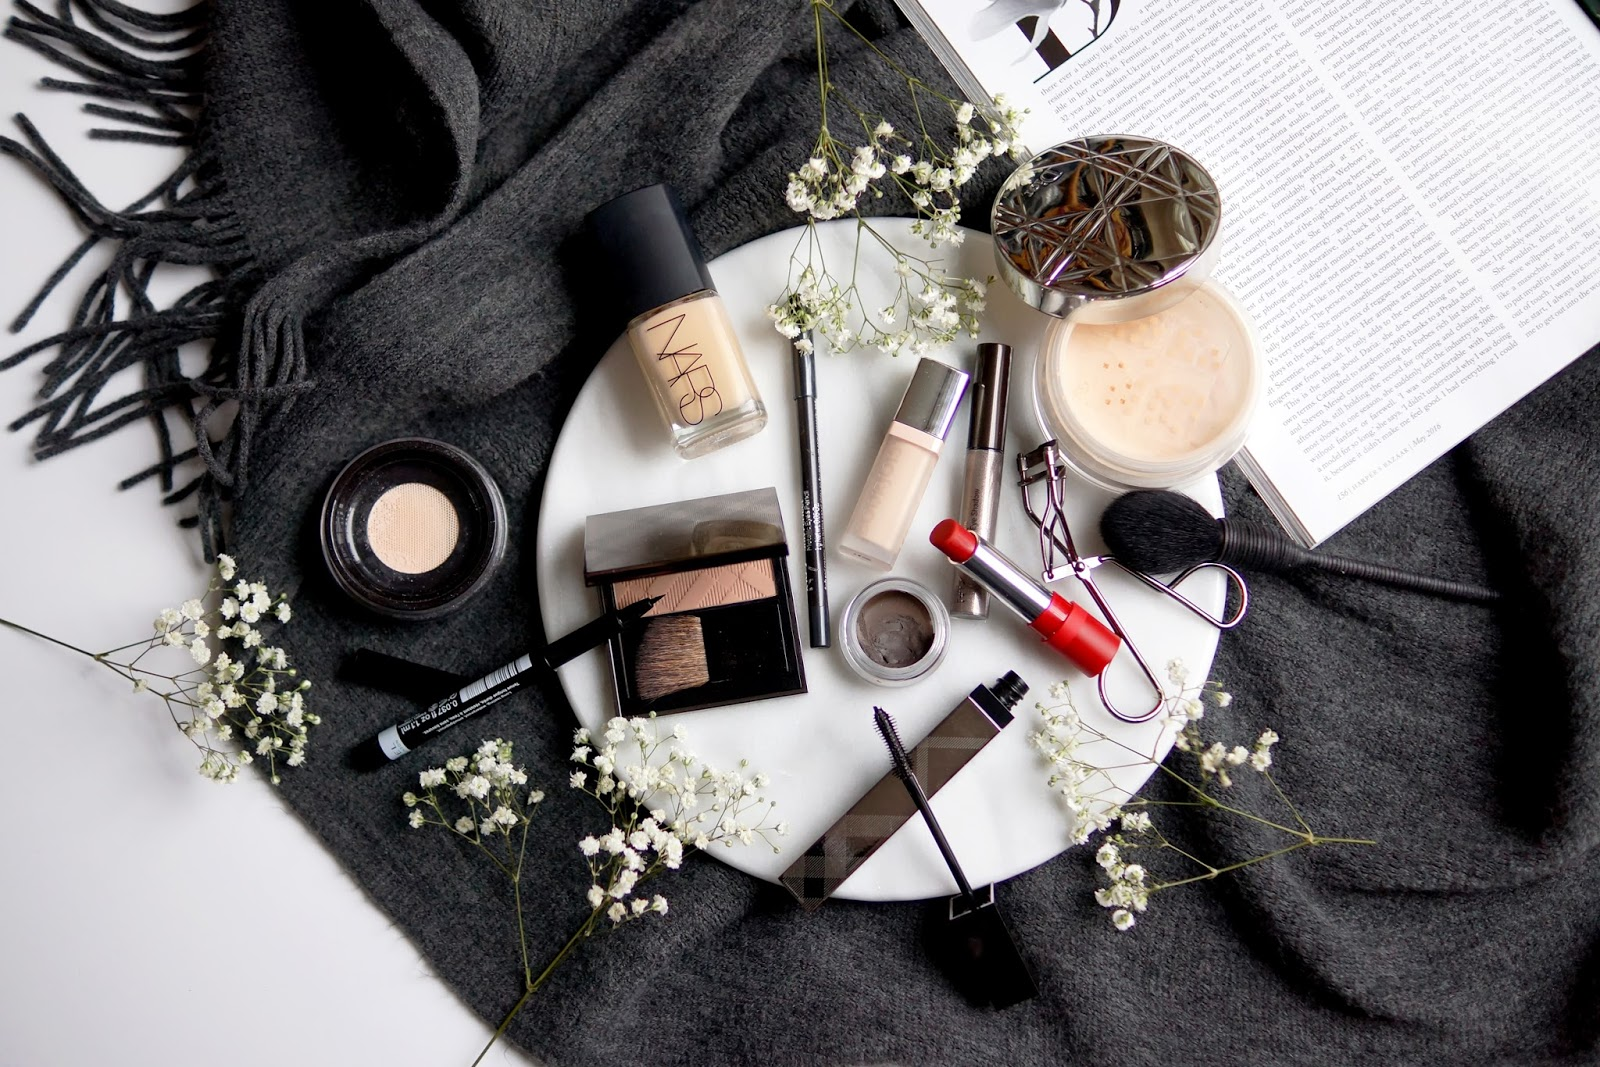 barely-there-beauty-christmas-new-year-makeup-look-tutorial-2016-flatlay-photography